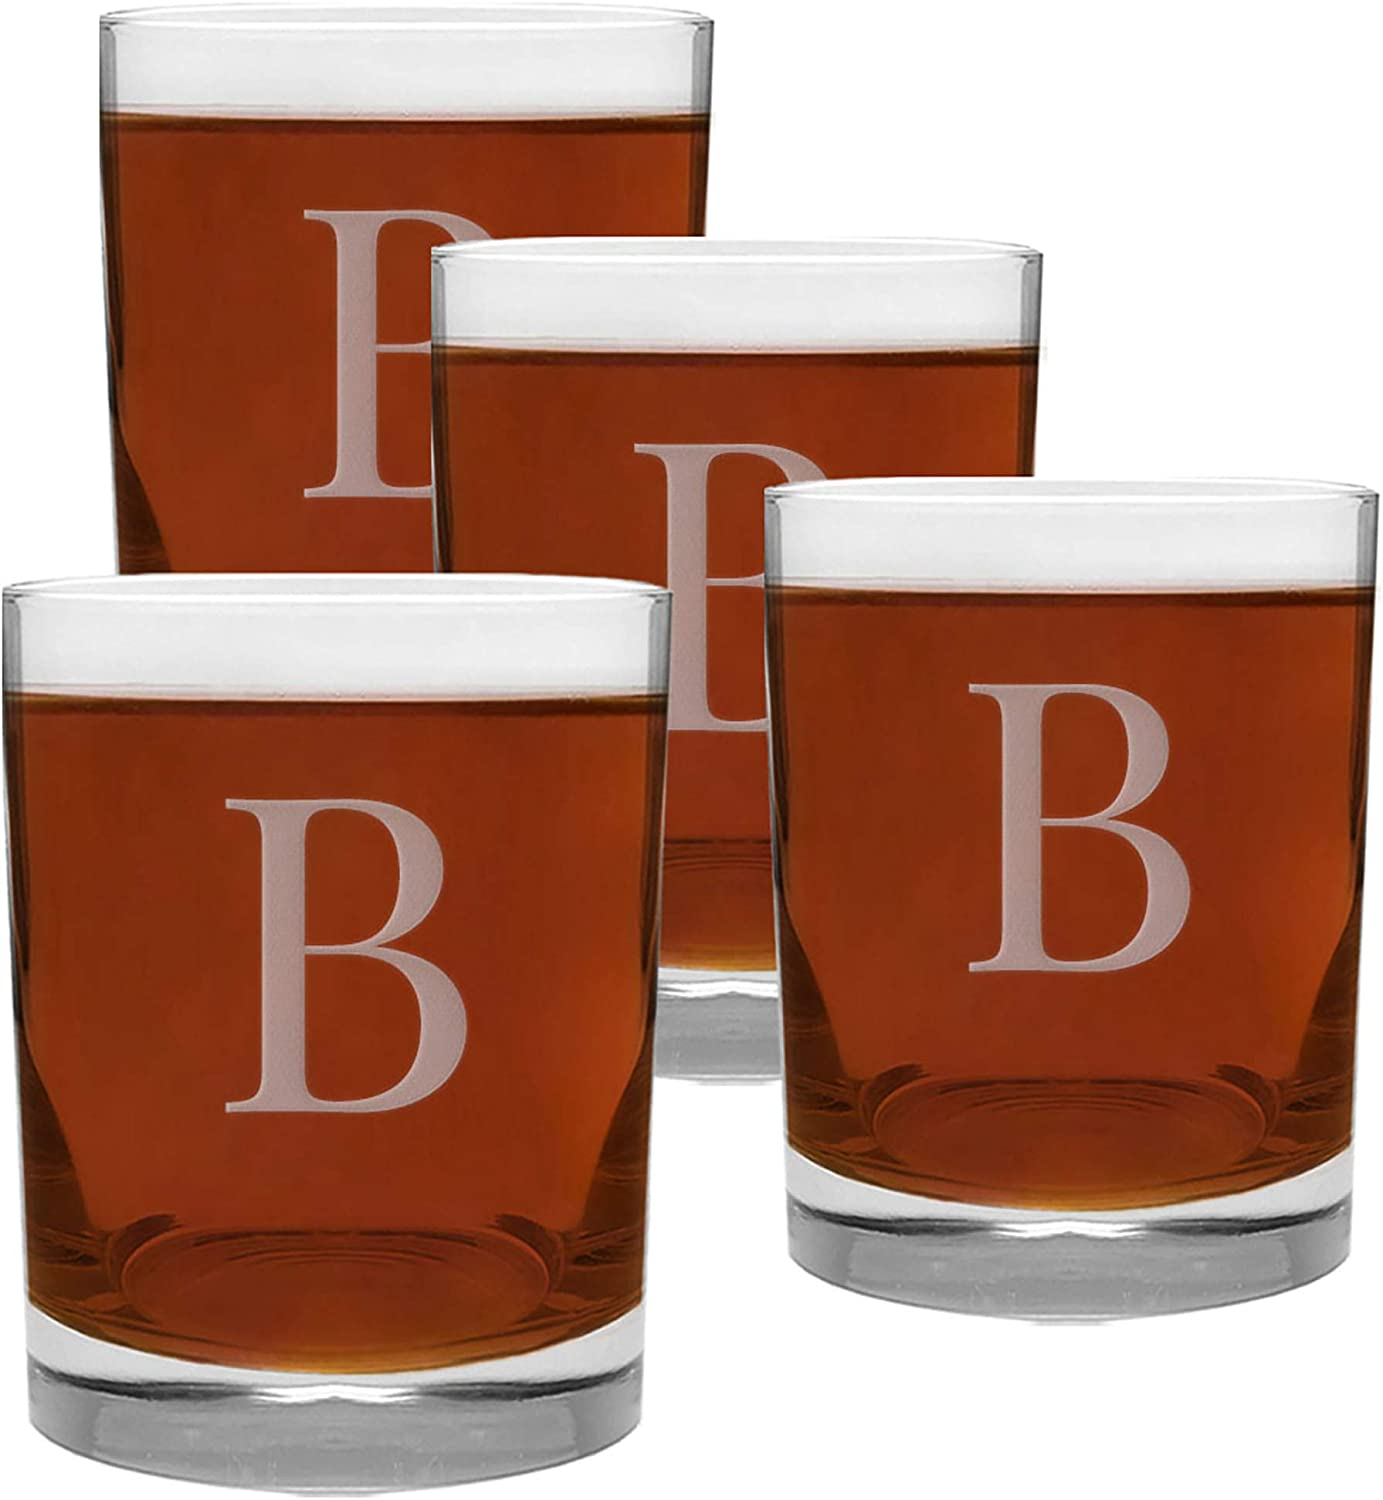 4 Discount is also underway Piece Glass Be super welcome Set Engraved B-Letter 13.5-Ounce Monogram with